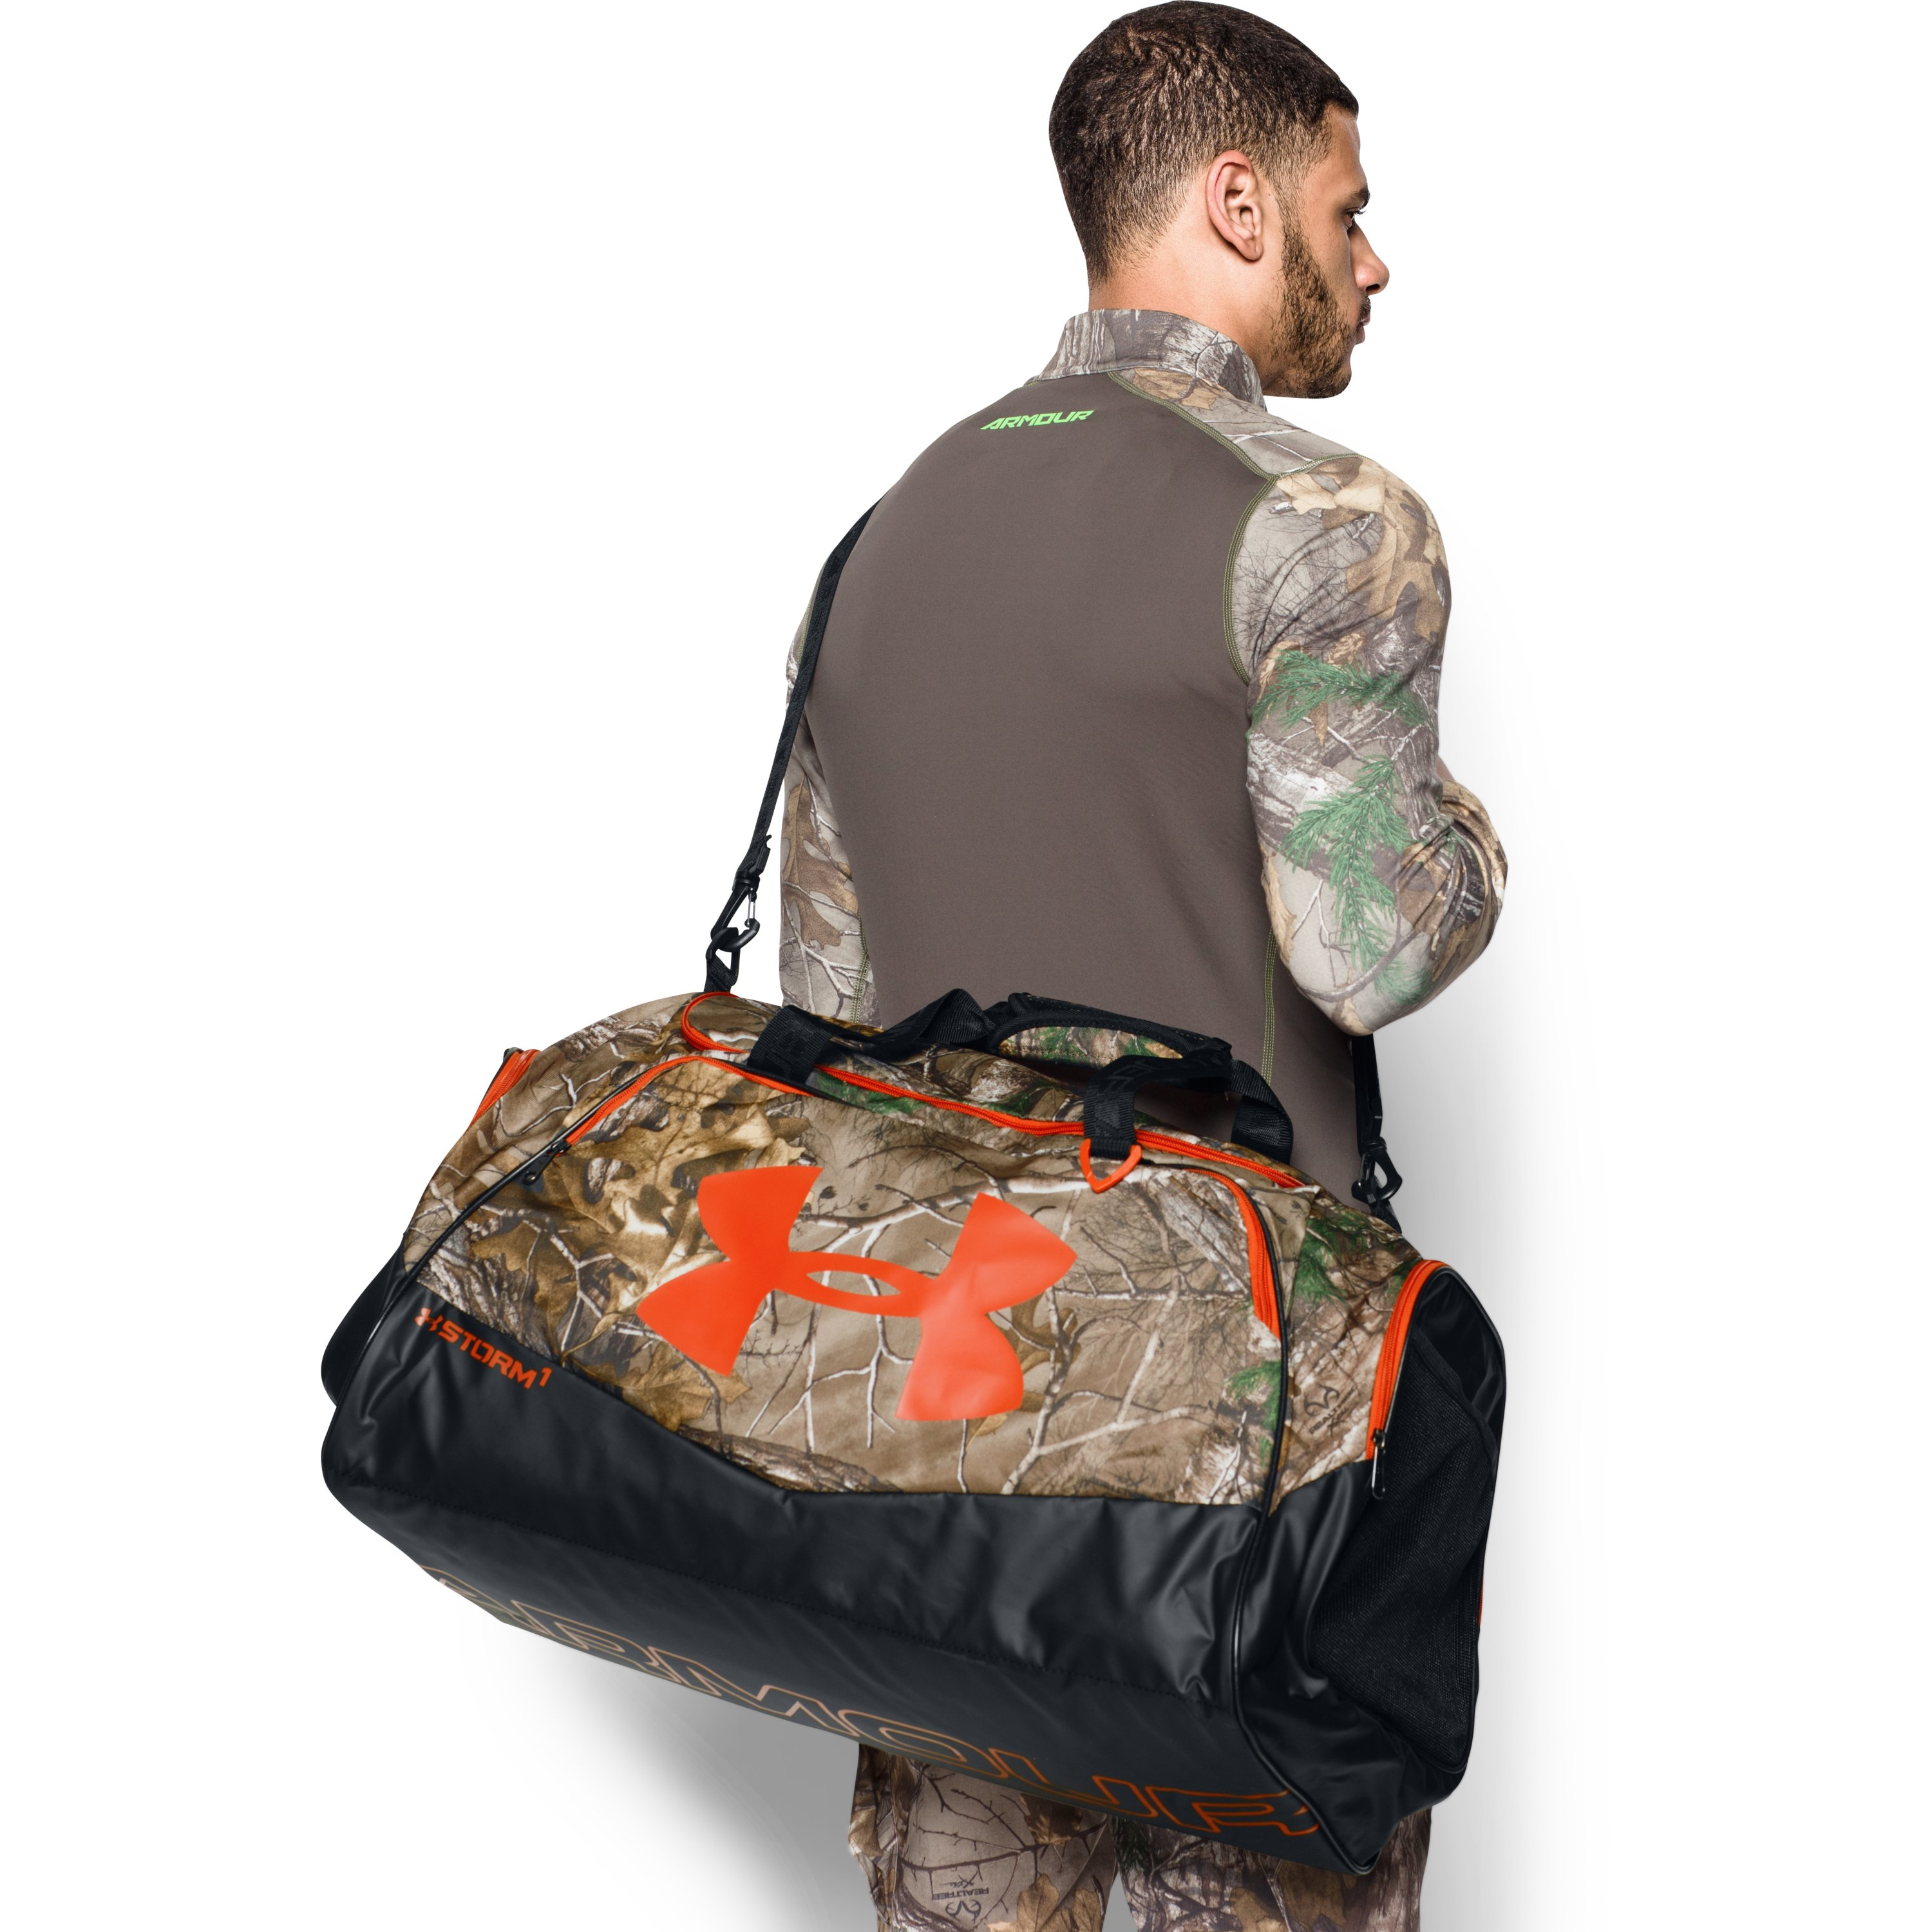 924afd3fd182 Lyst - Under Armour Ua Storm Camo Undeniable Lg Duffle for Men